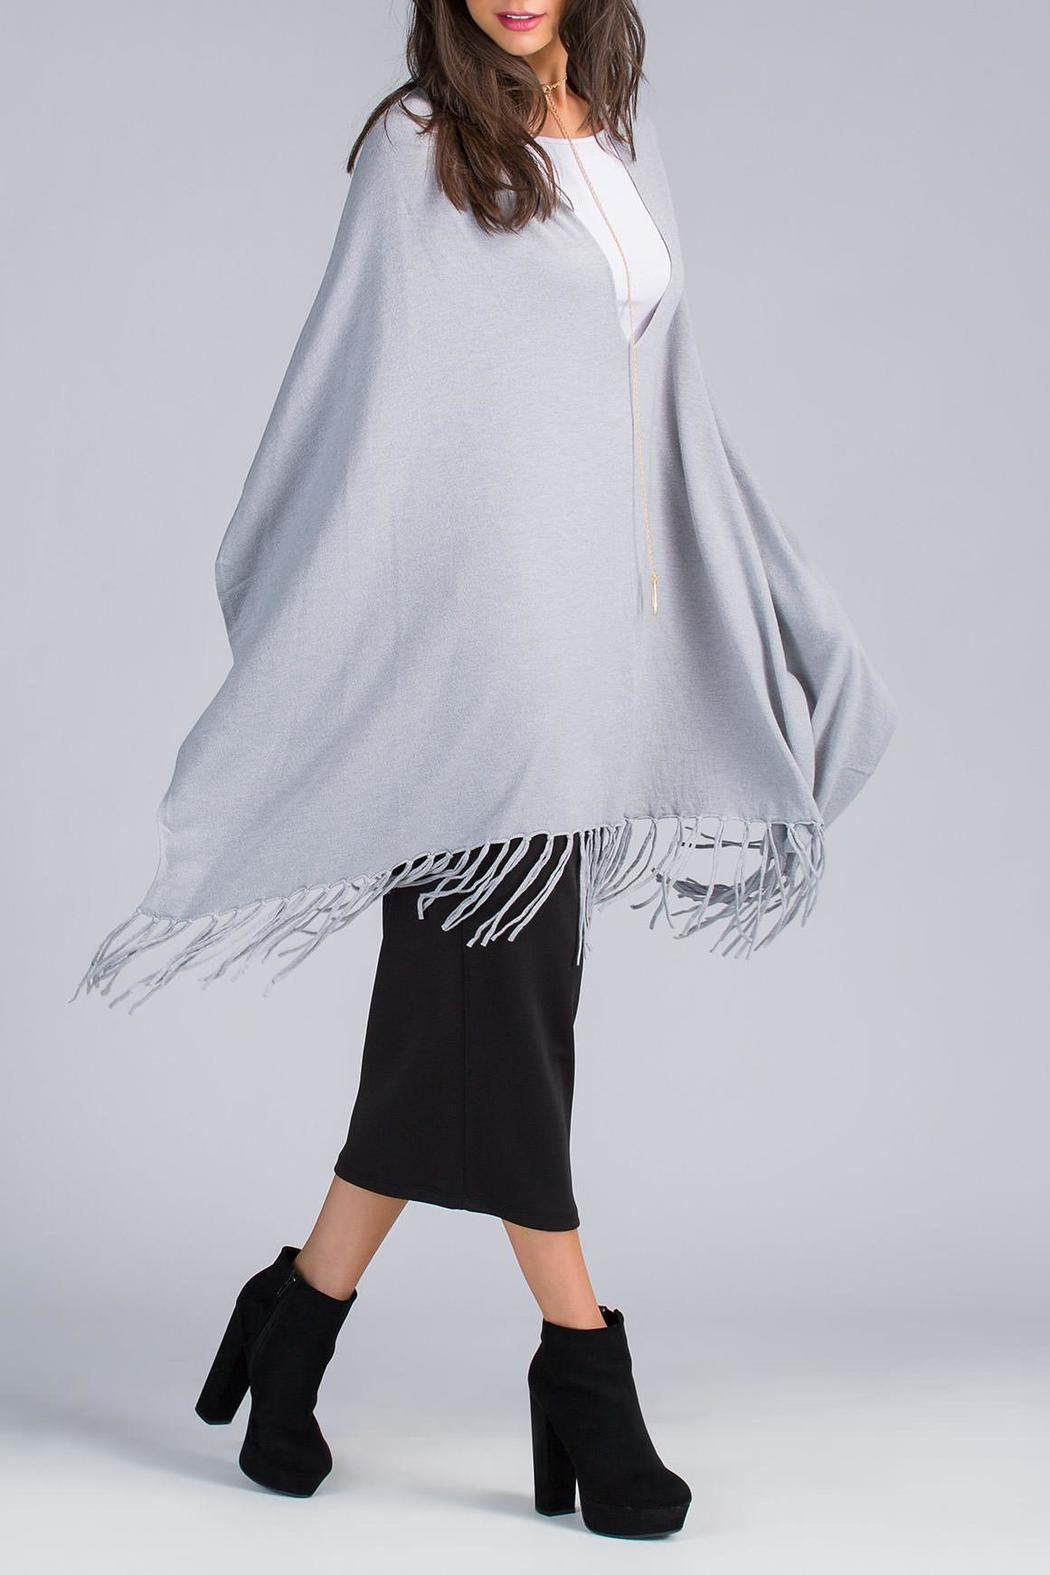 Lovestitch Granite Fringe Poncho from Montclair by Atelier ...